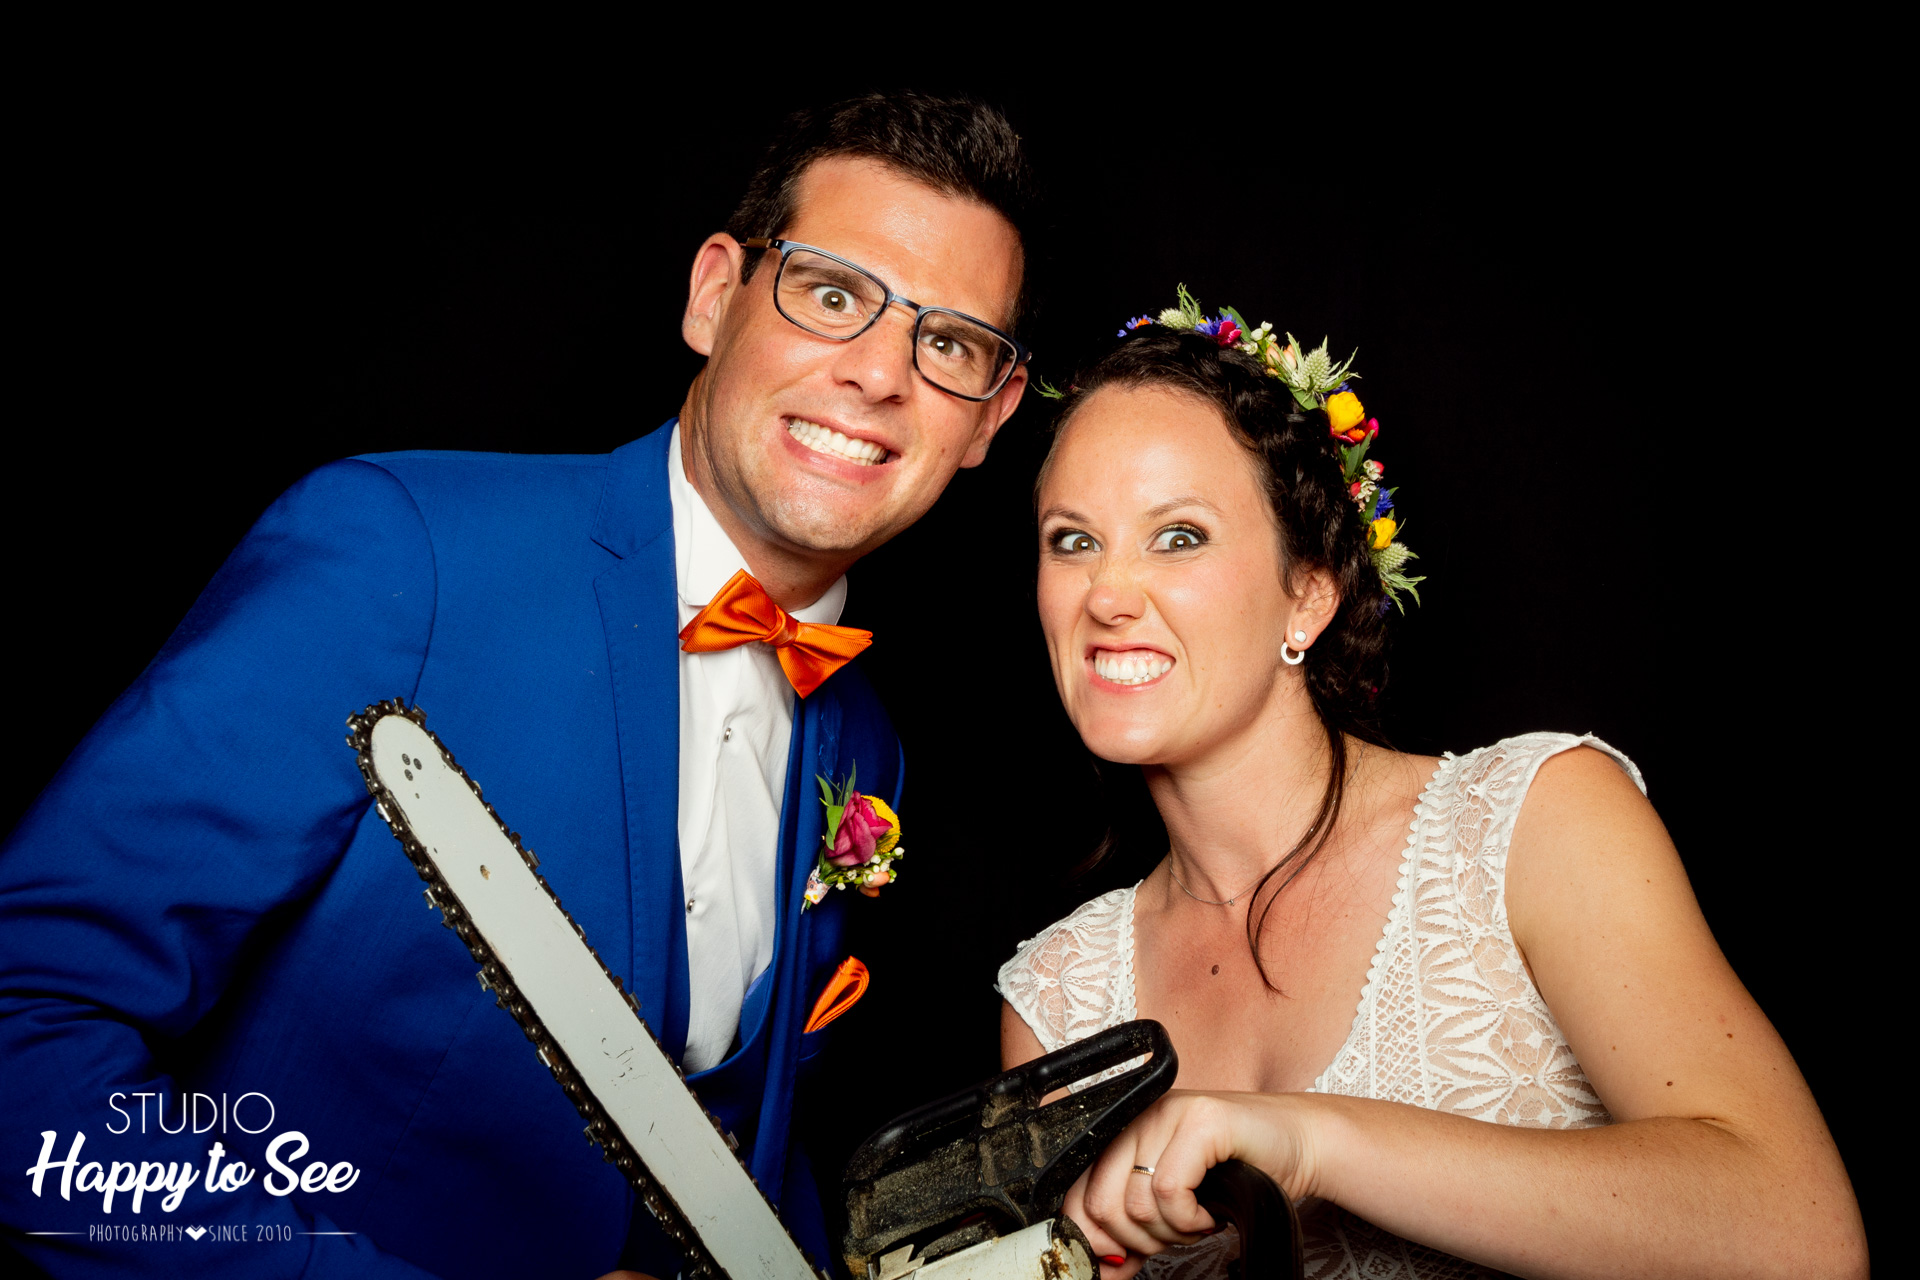 Studio Mobile Happy to See animation photobooth mariage